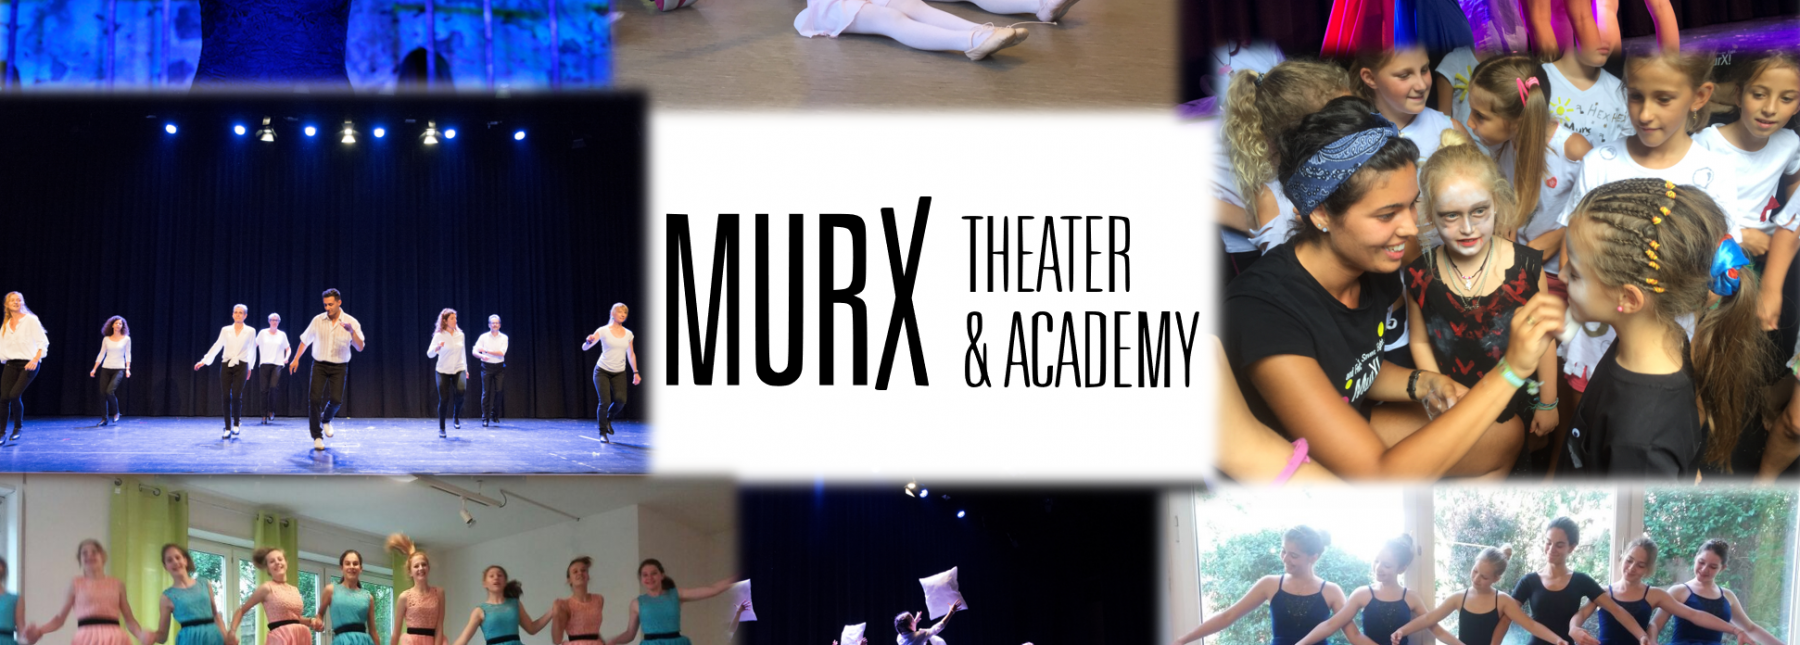 murx_academy_theater